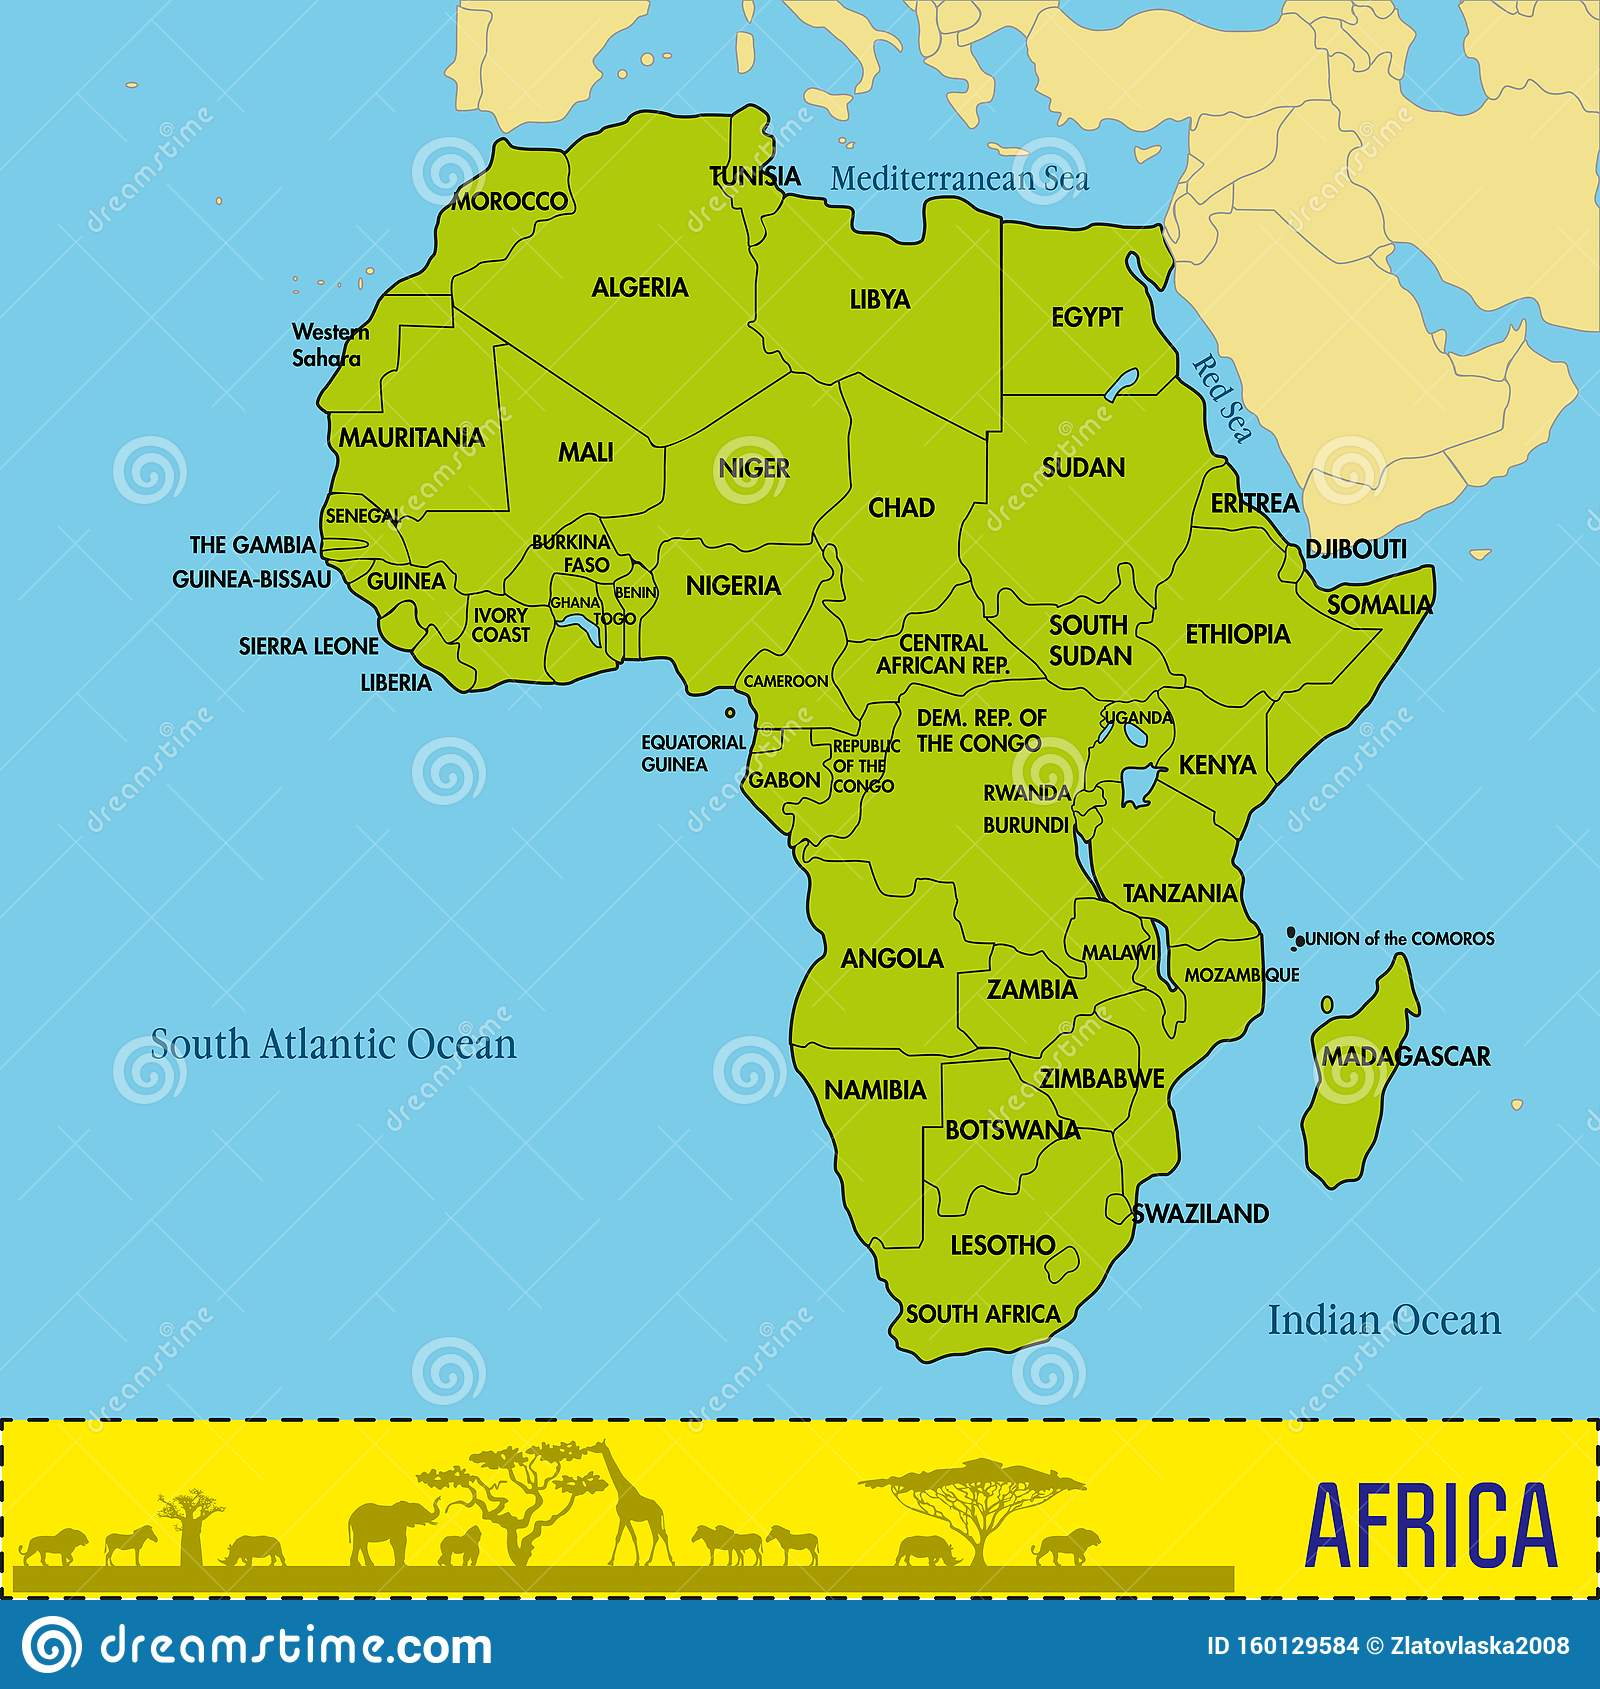 africa map and capitals Map Of Africa With All Countries And Their Capitals Stock Vector africa map and capitals